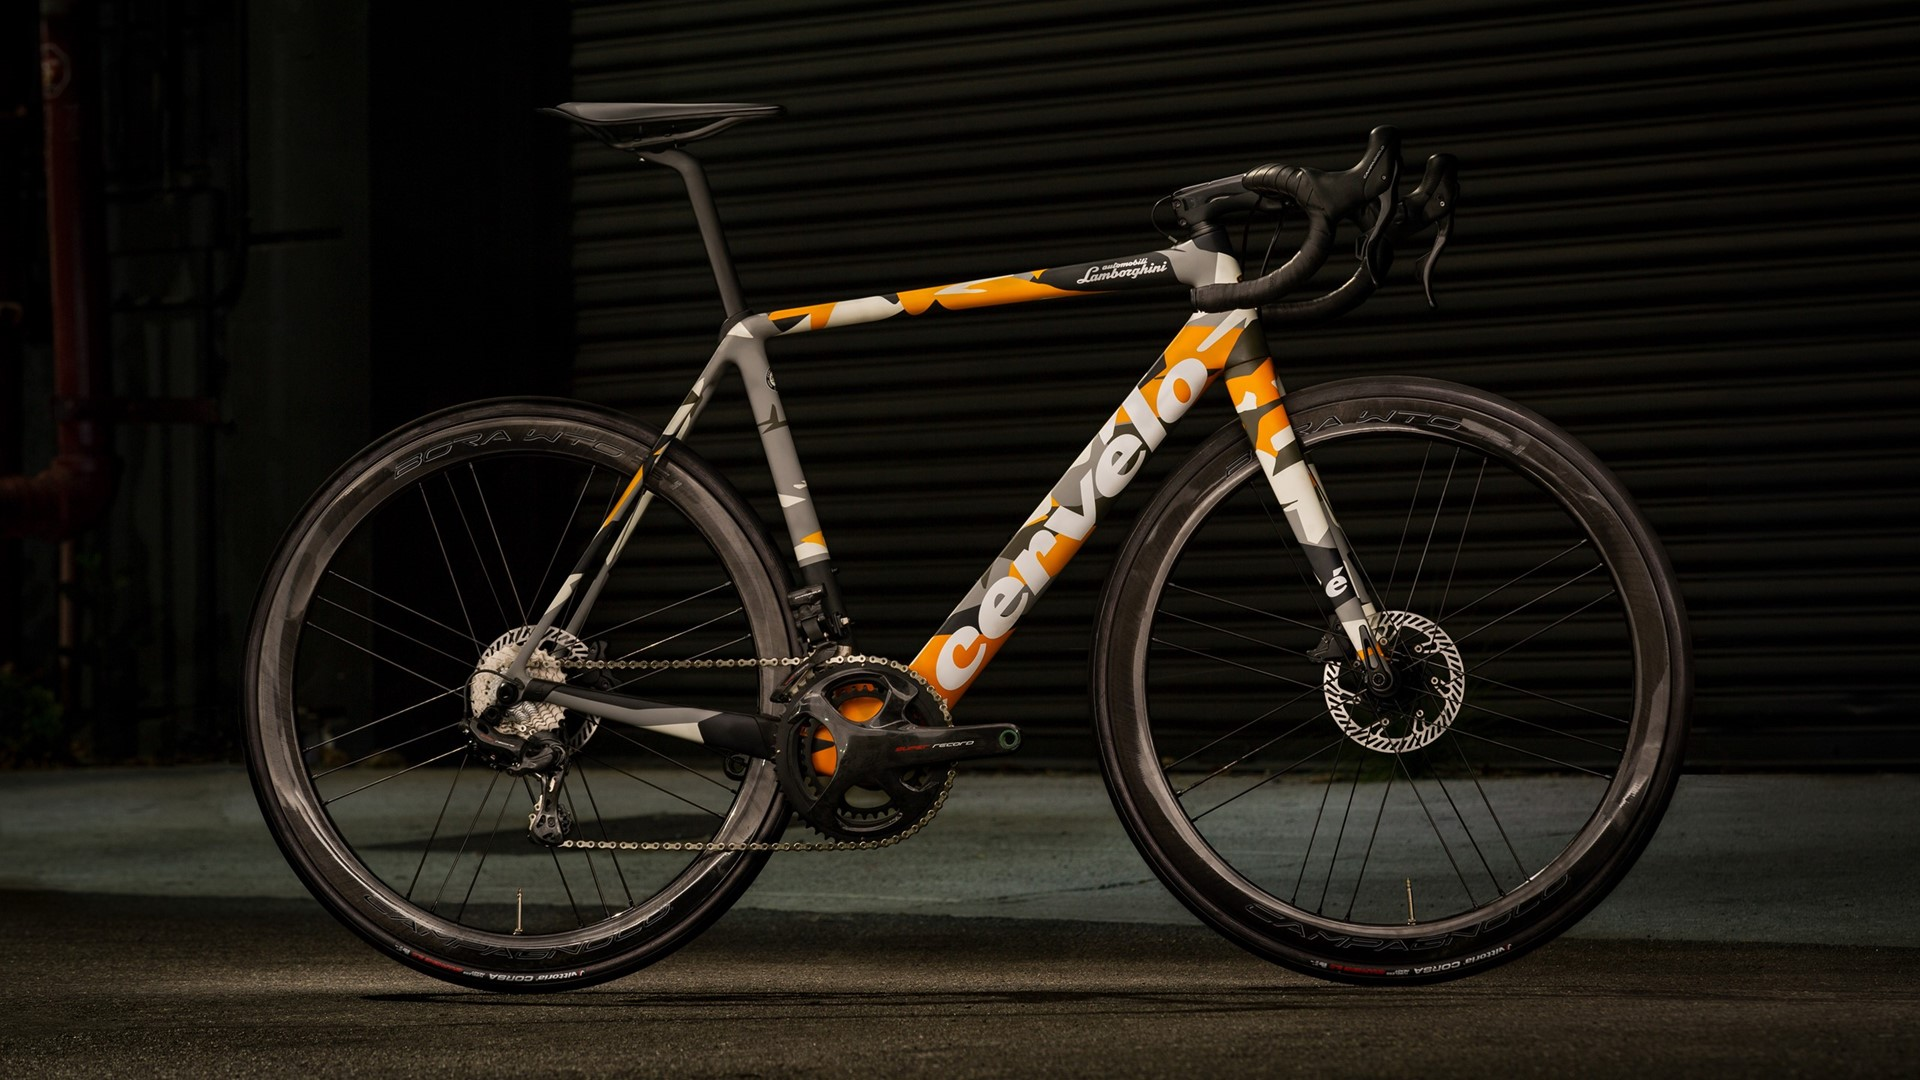 Automobili Lamborghini and Cervélo present the new R5 bicycle in a limited edition - Image 8